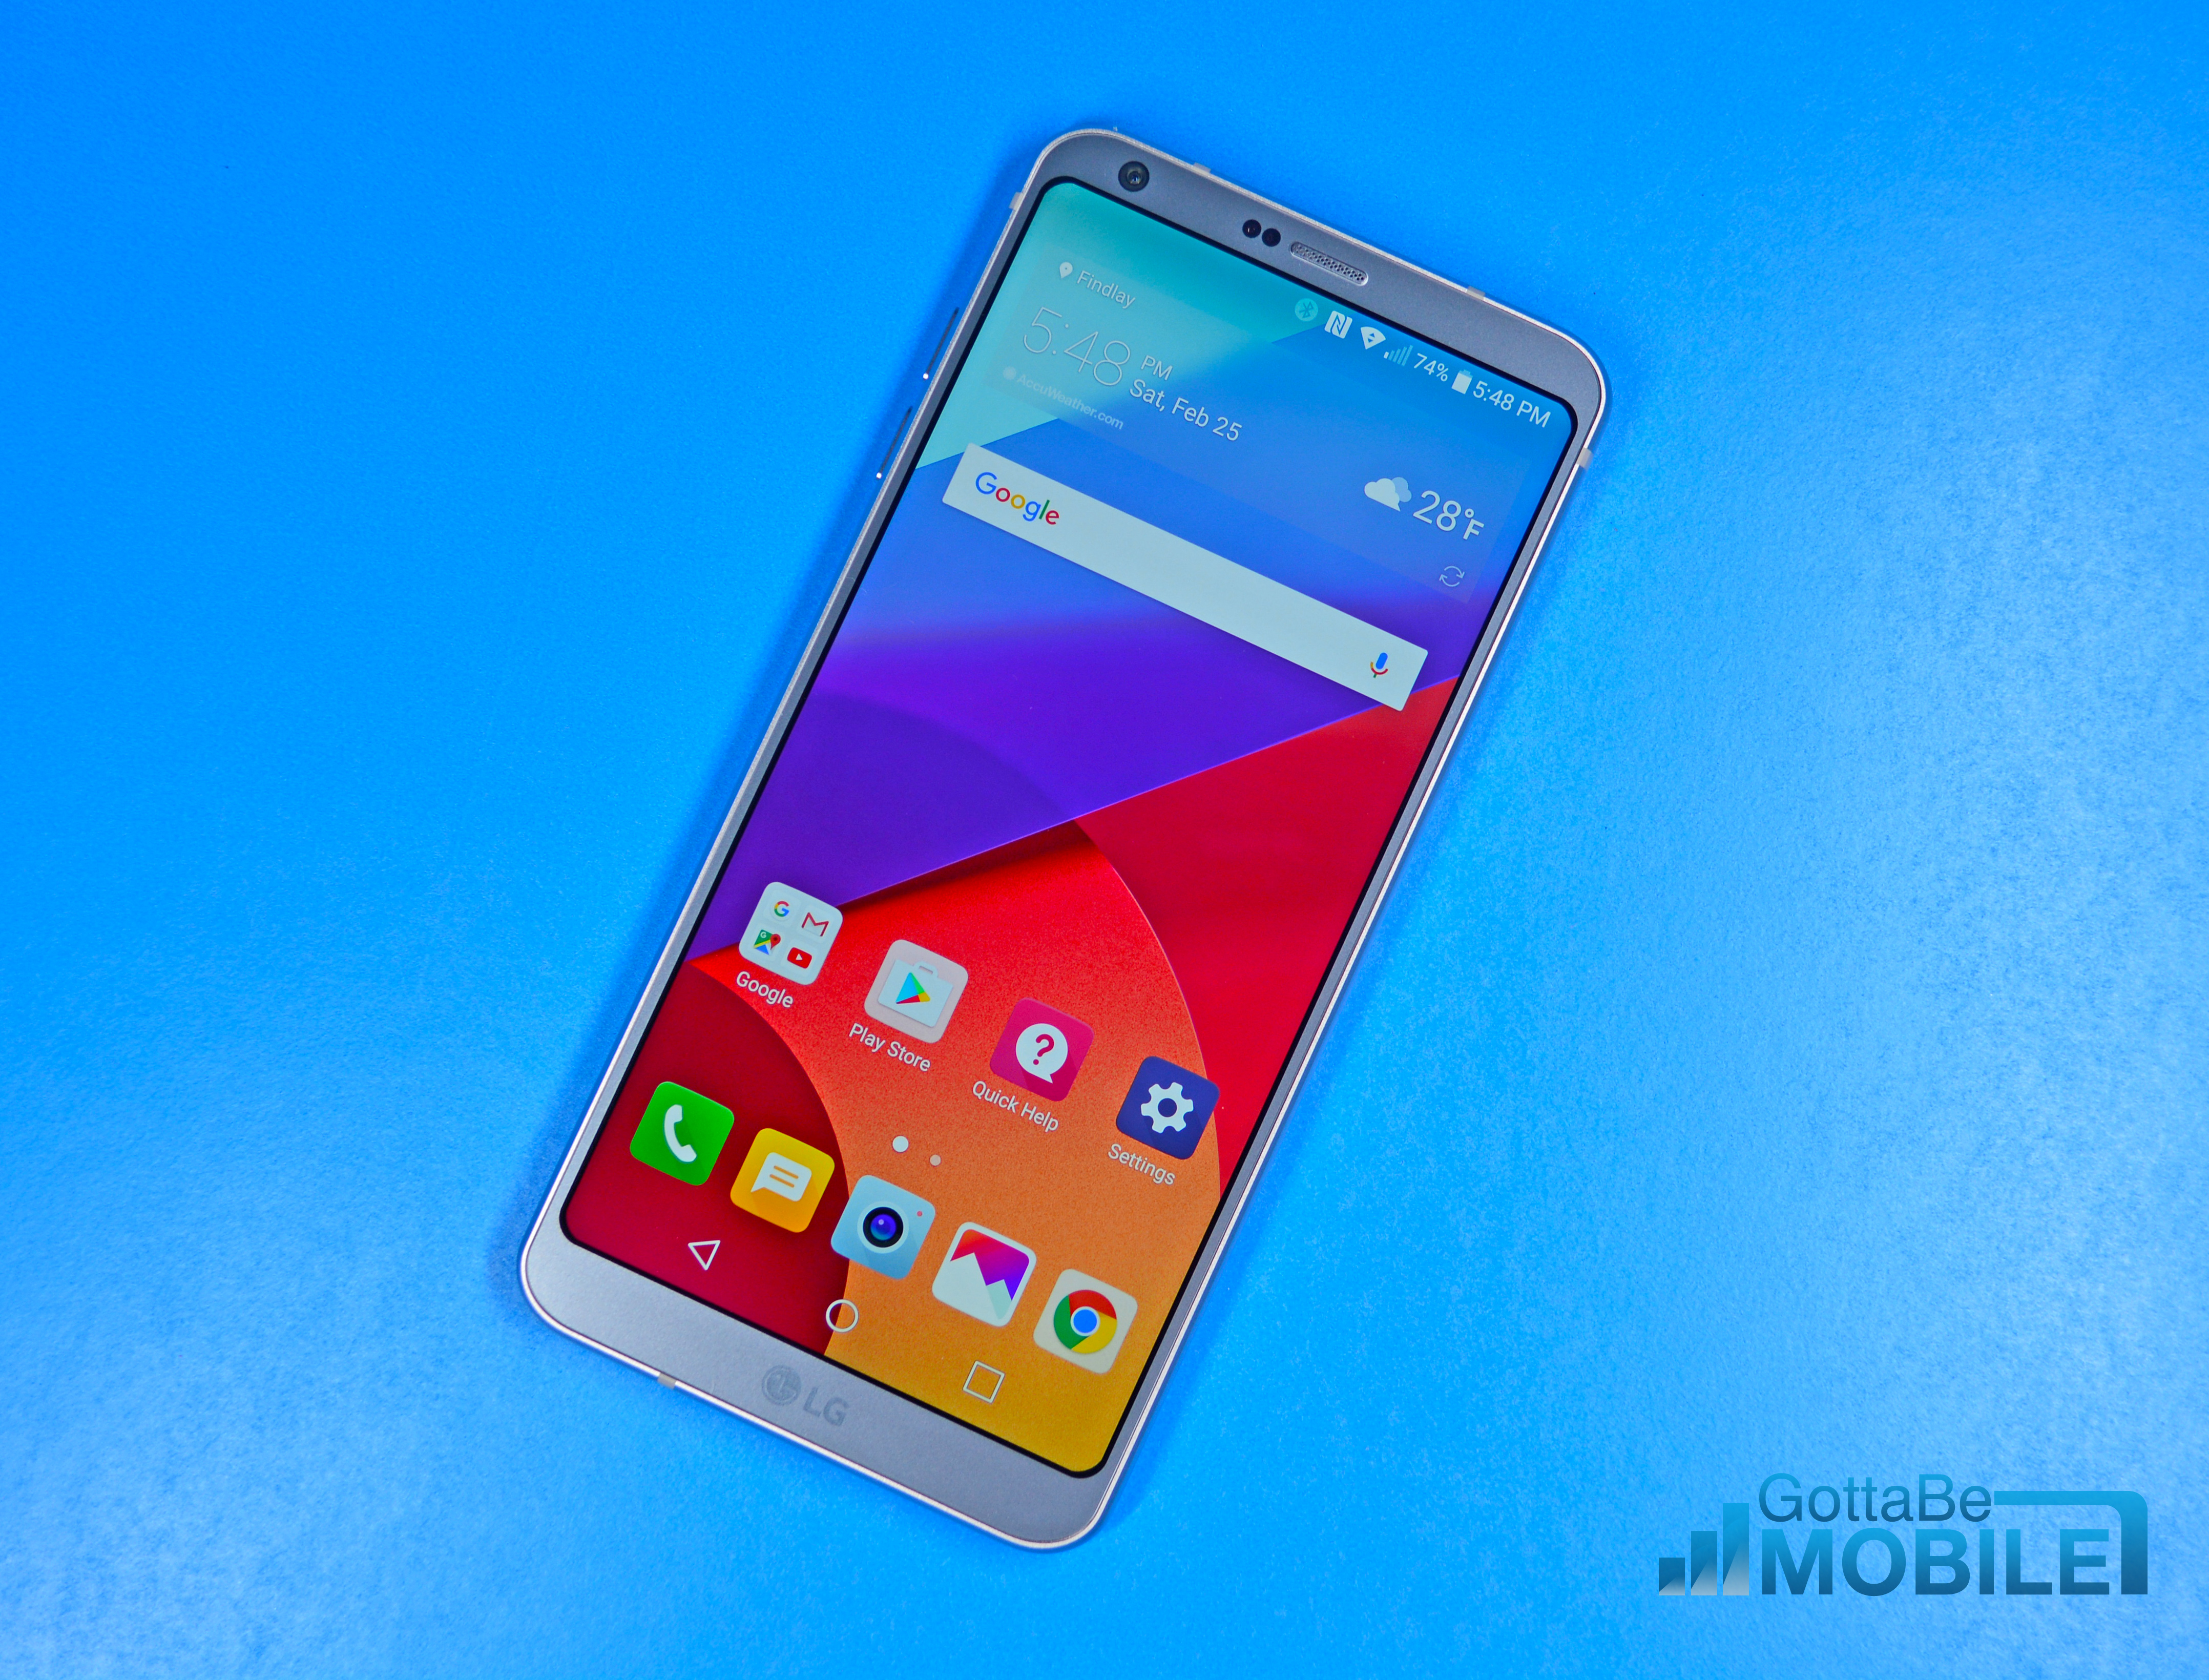 Curved corners look great and help protect the display if you drop the phone.